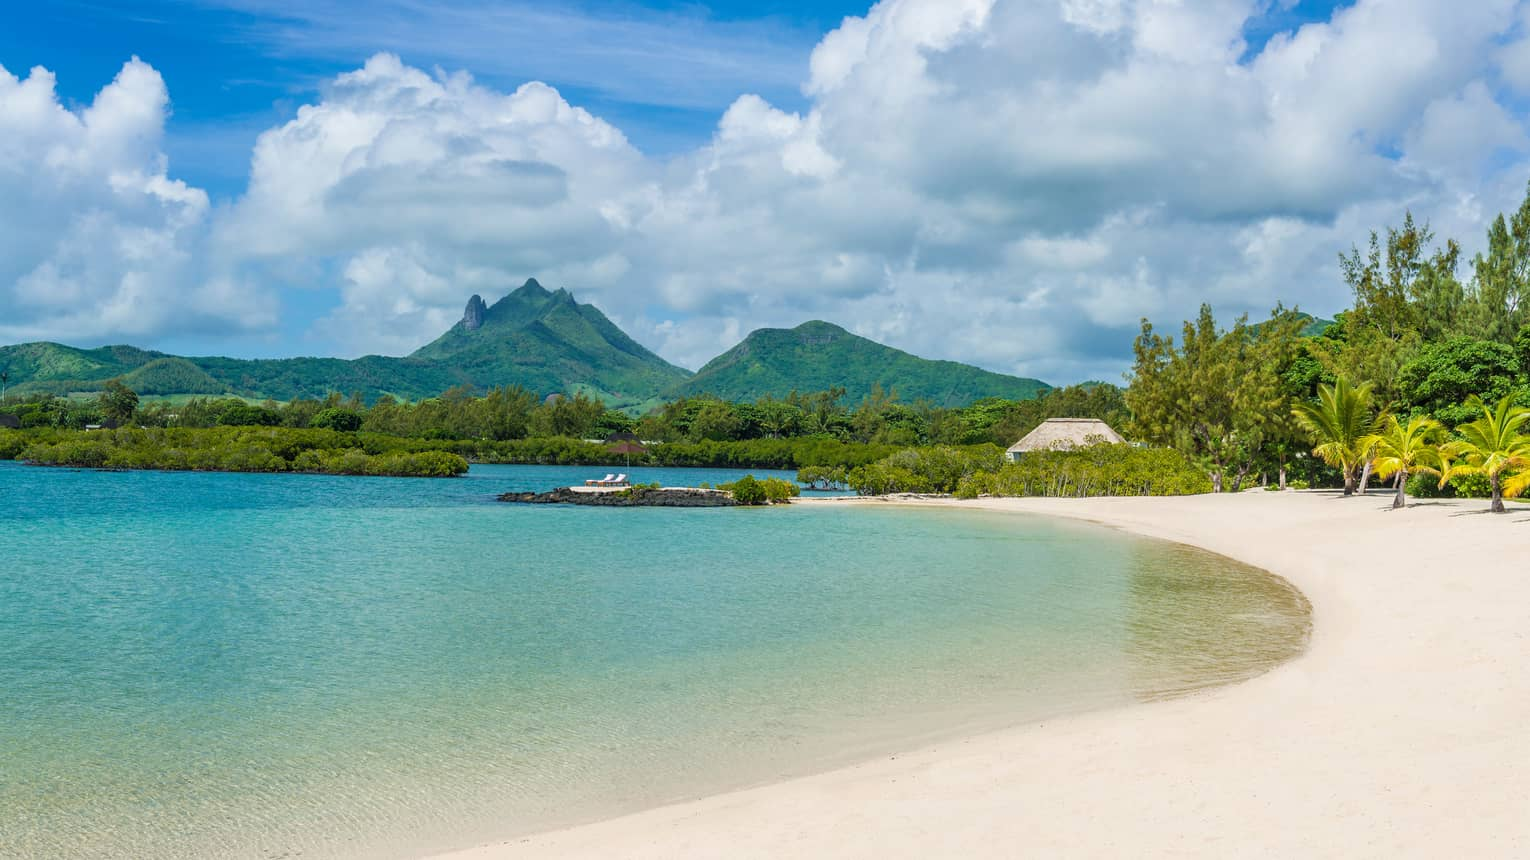 Mauritius green mountains, tropical forest behind white sand beach